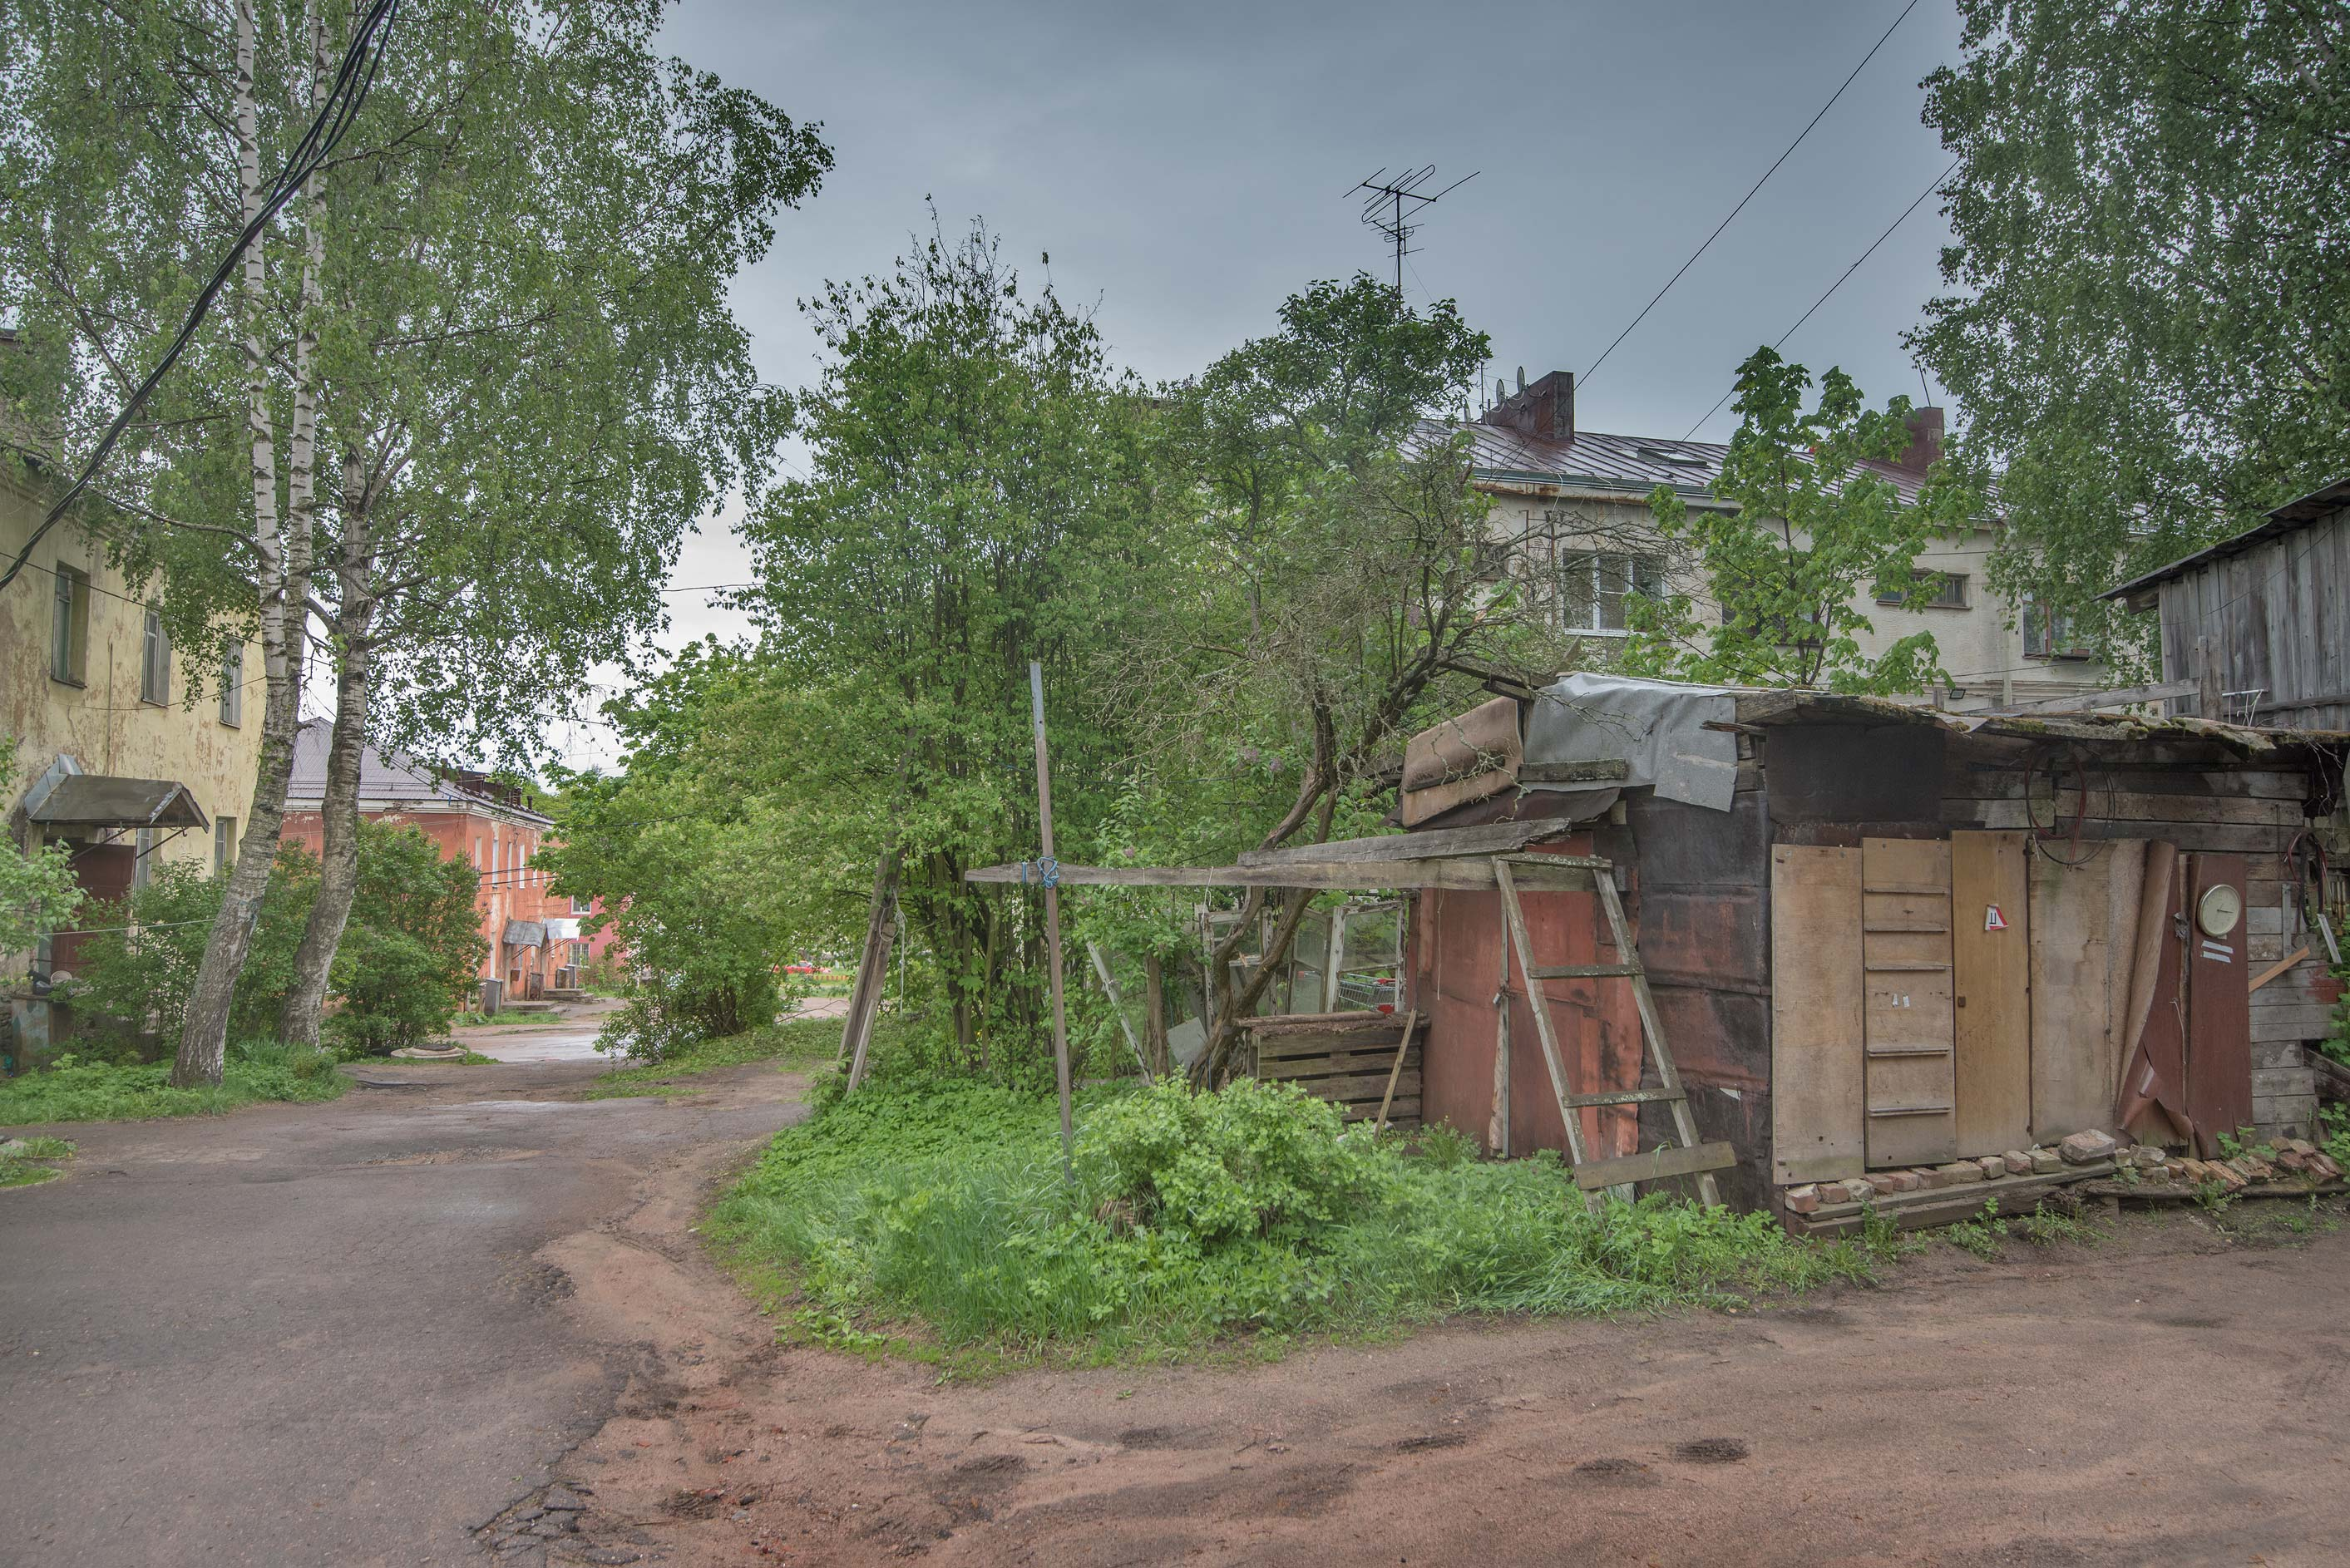 Makeshift storage houses at 6 Okruzhnaya St. in Vyborg. Russia